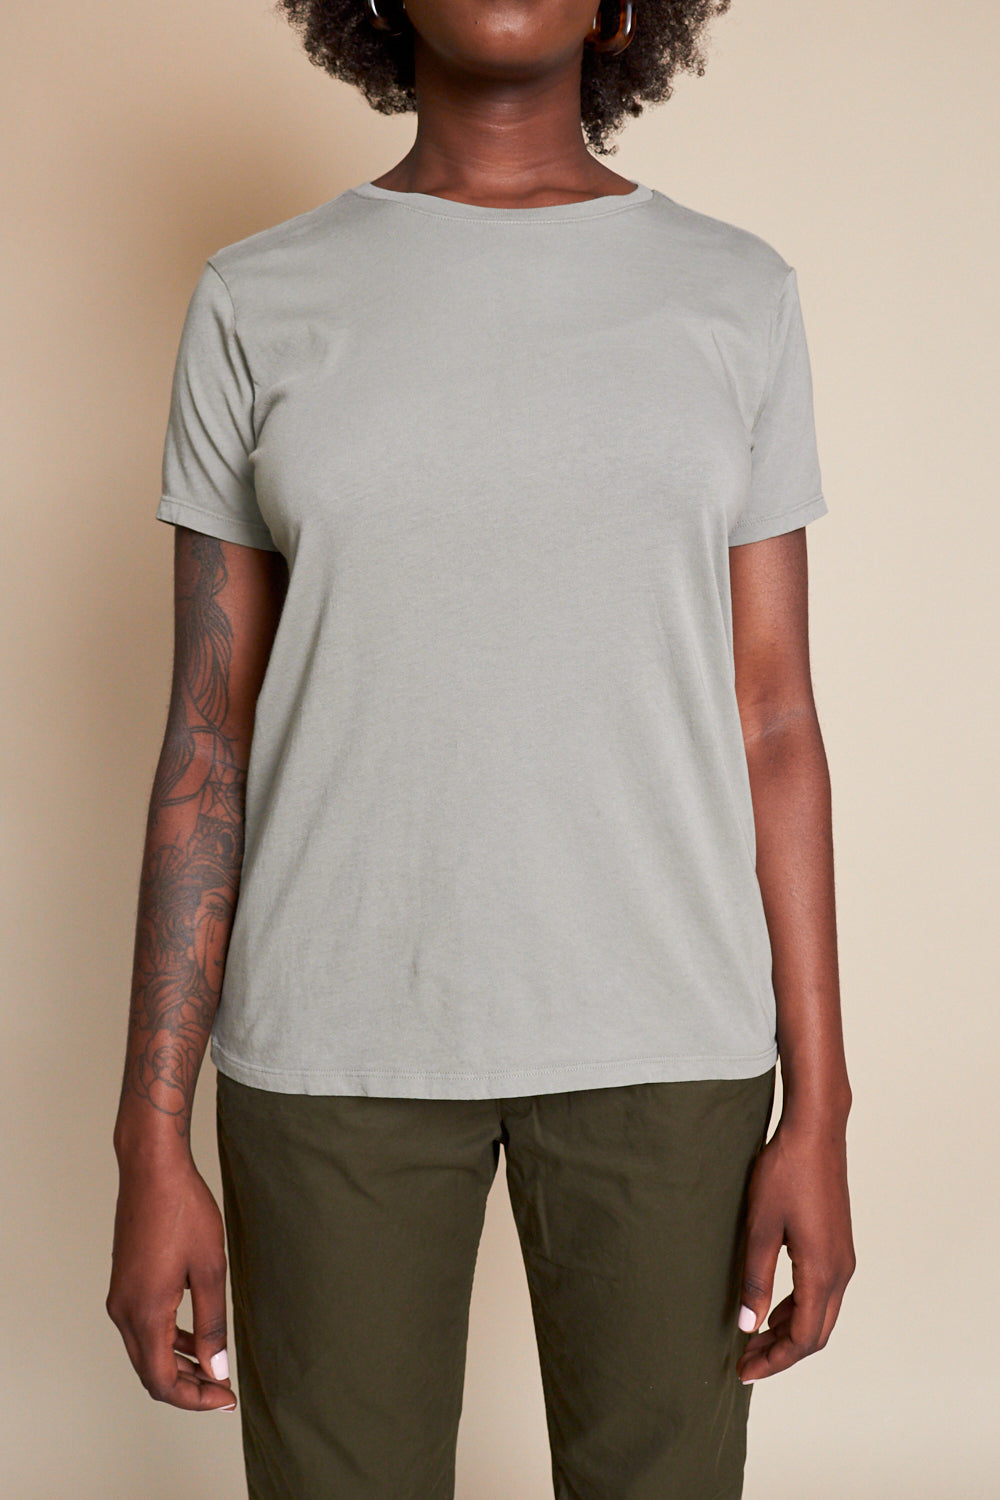 Organic Cotton Layering Crew in Sprout